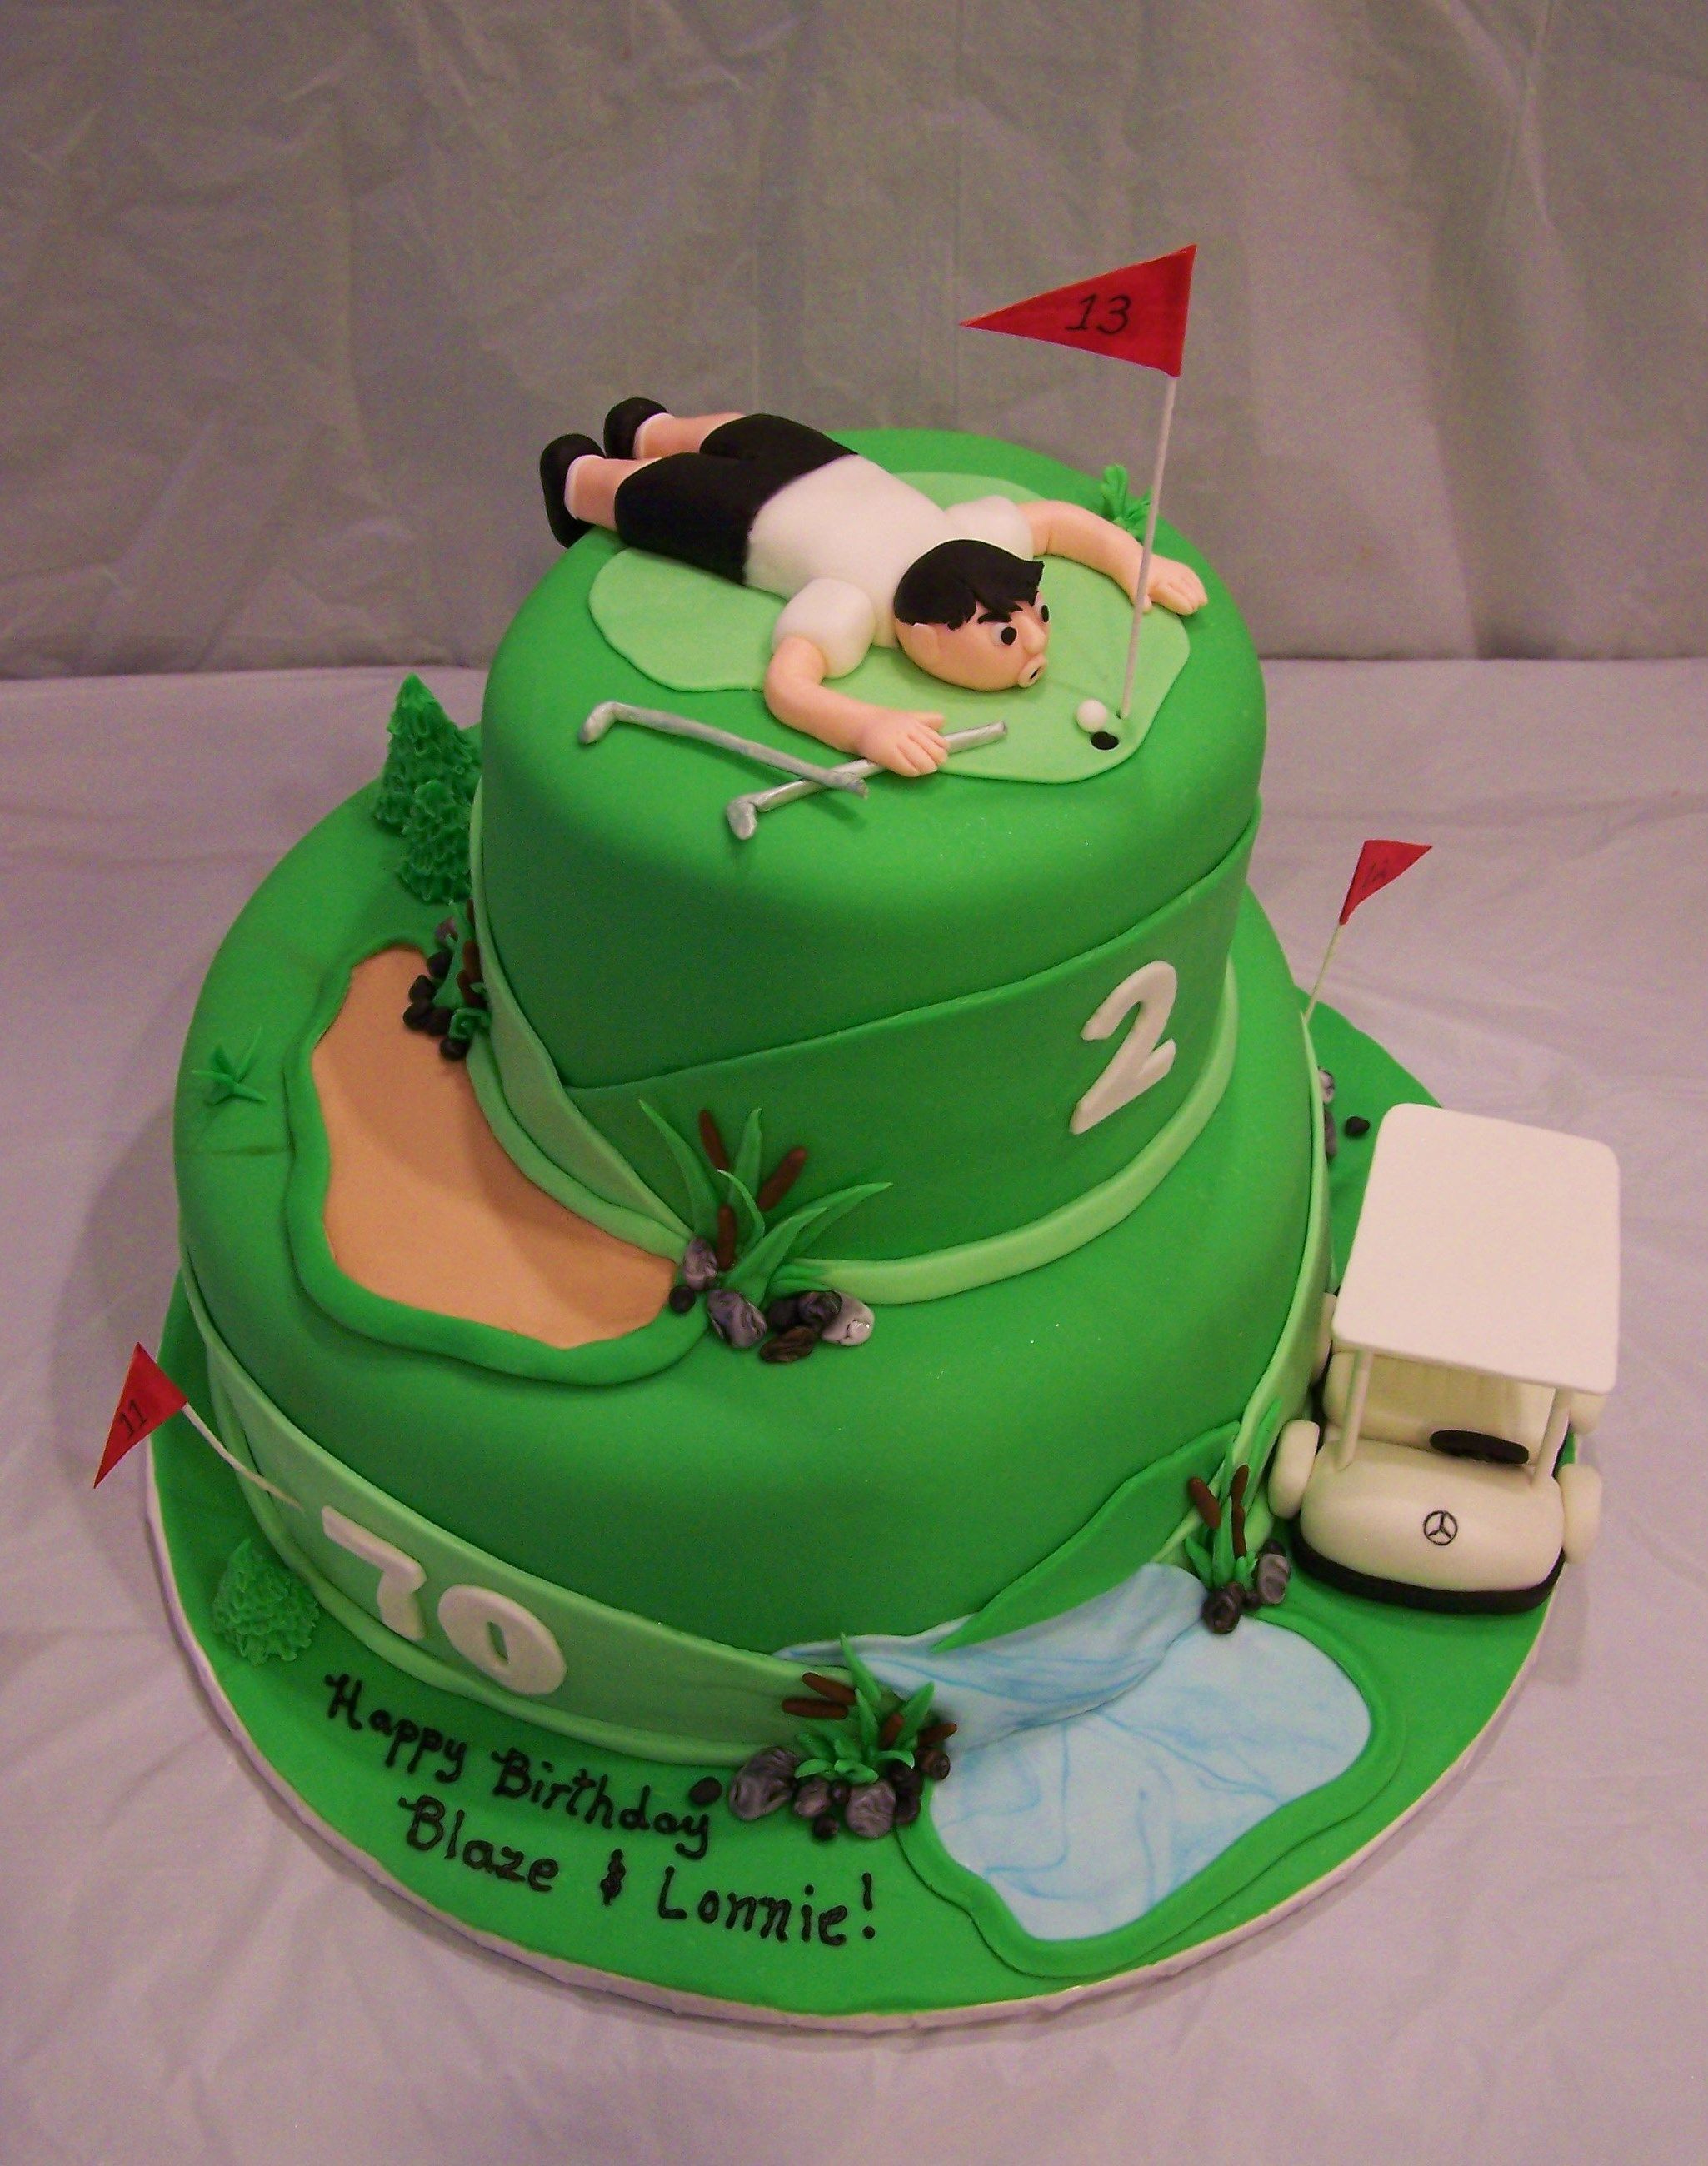 golf themed cake cakes Ive made Pinterest Golf themed cakes